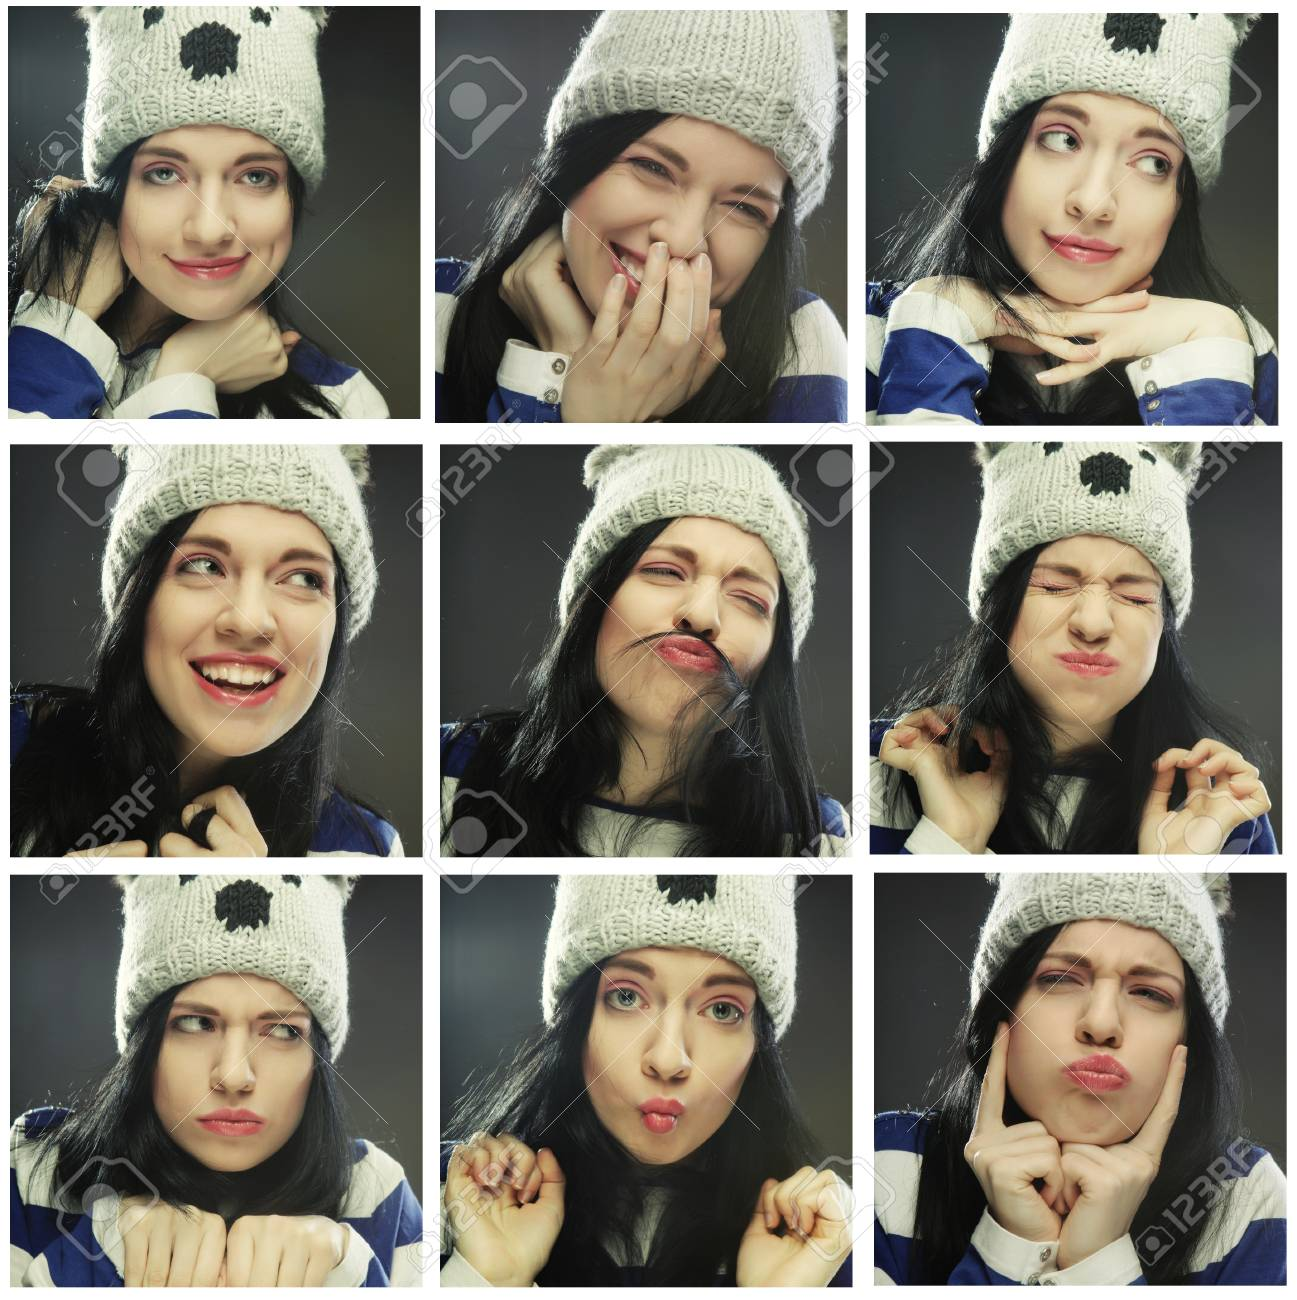 collage of the same woman in winter hat making diferent expressions